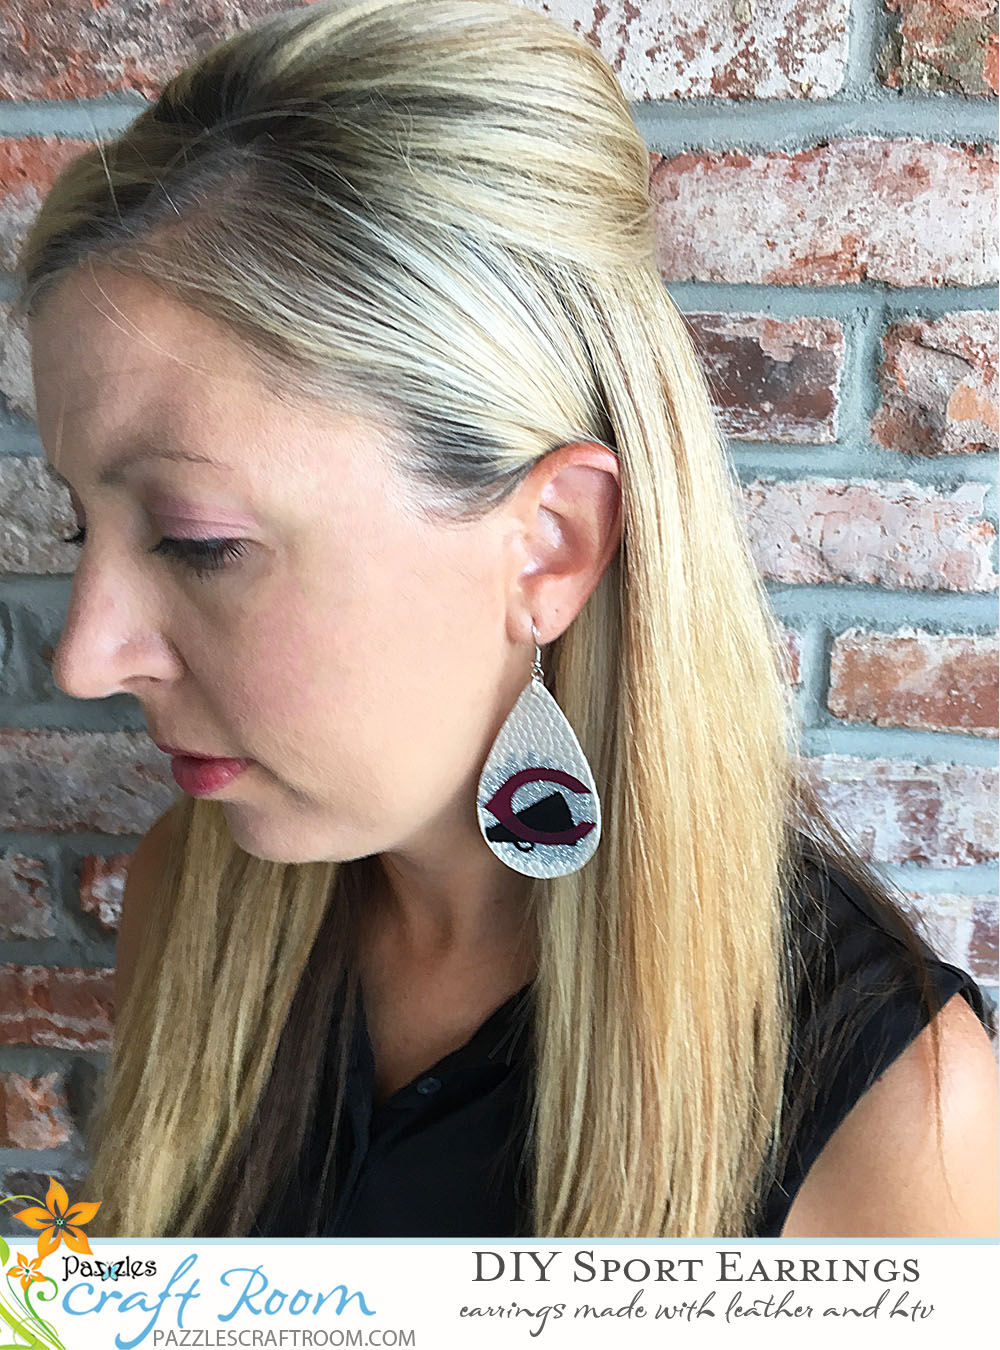 Pazzles DIY Sport Earrings Made with Leather and HTV by Sara Weber